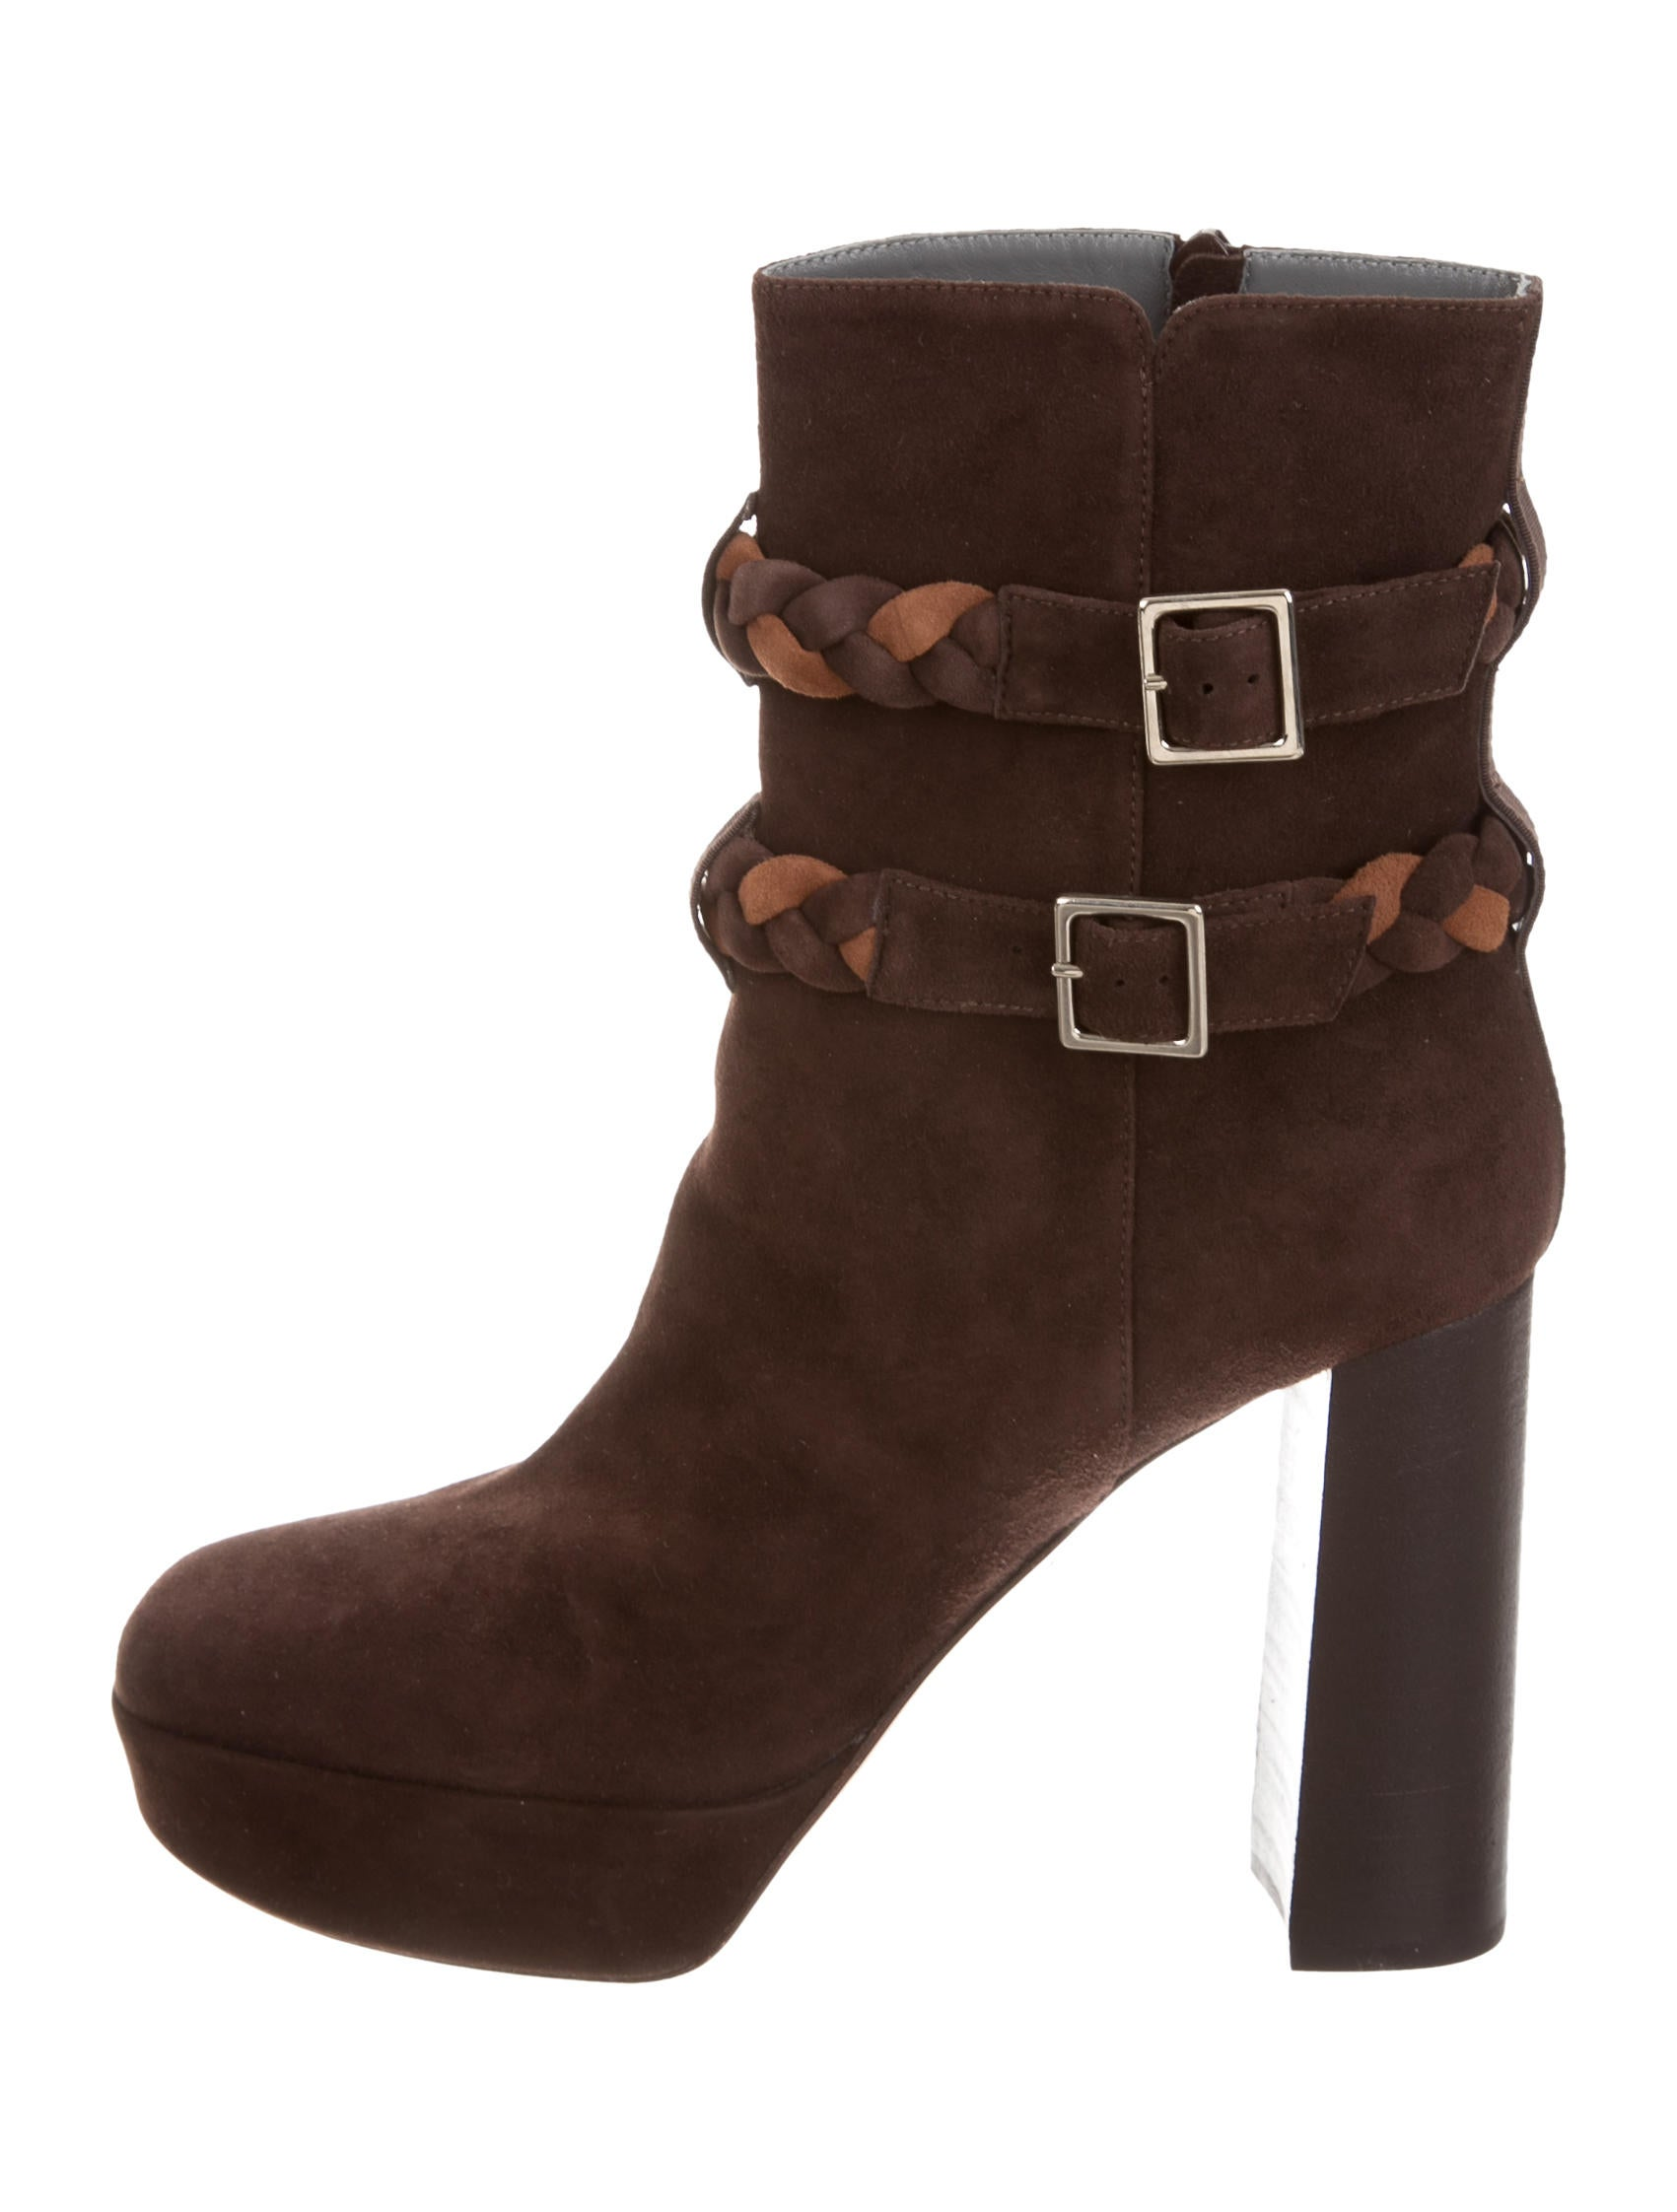 shopping online with mastercard discount brand new unisex Ritch Erani NYFC Suede Platform Ankle Boots buy cheap clearance store cheap 2015 HBLuKEU7J